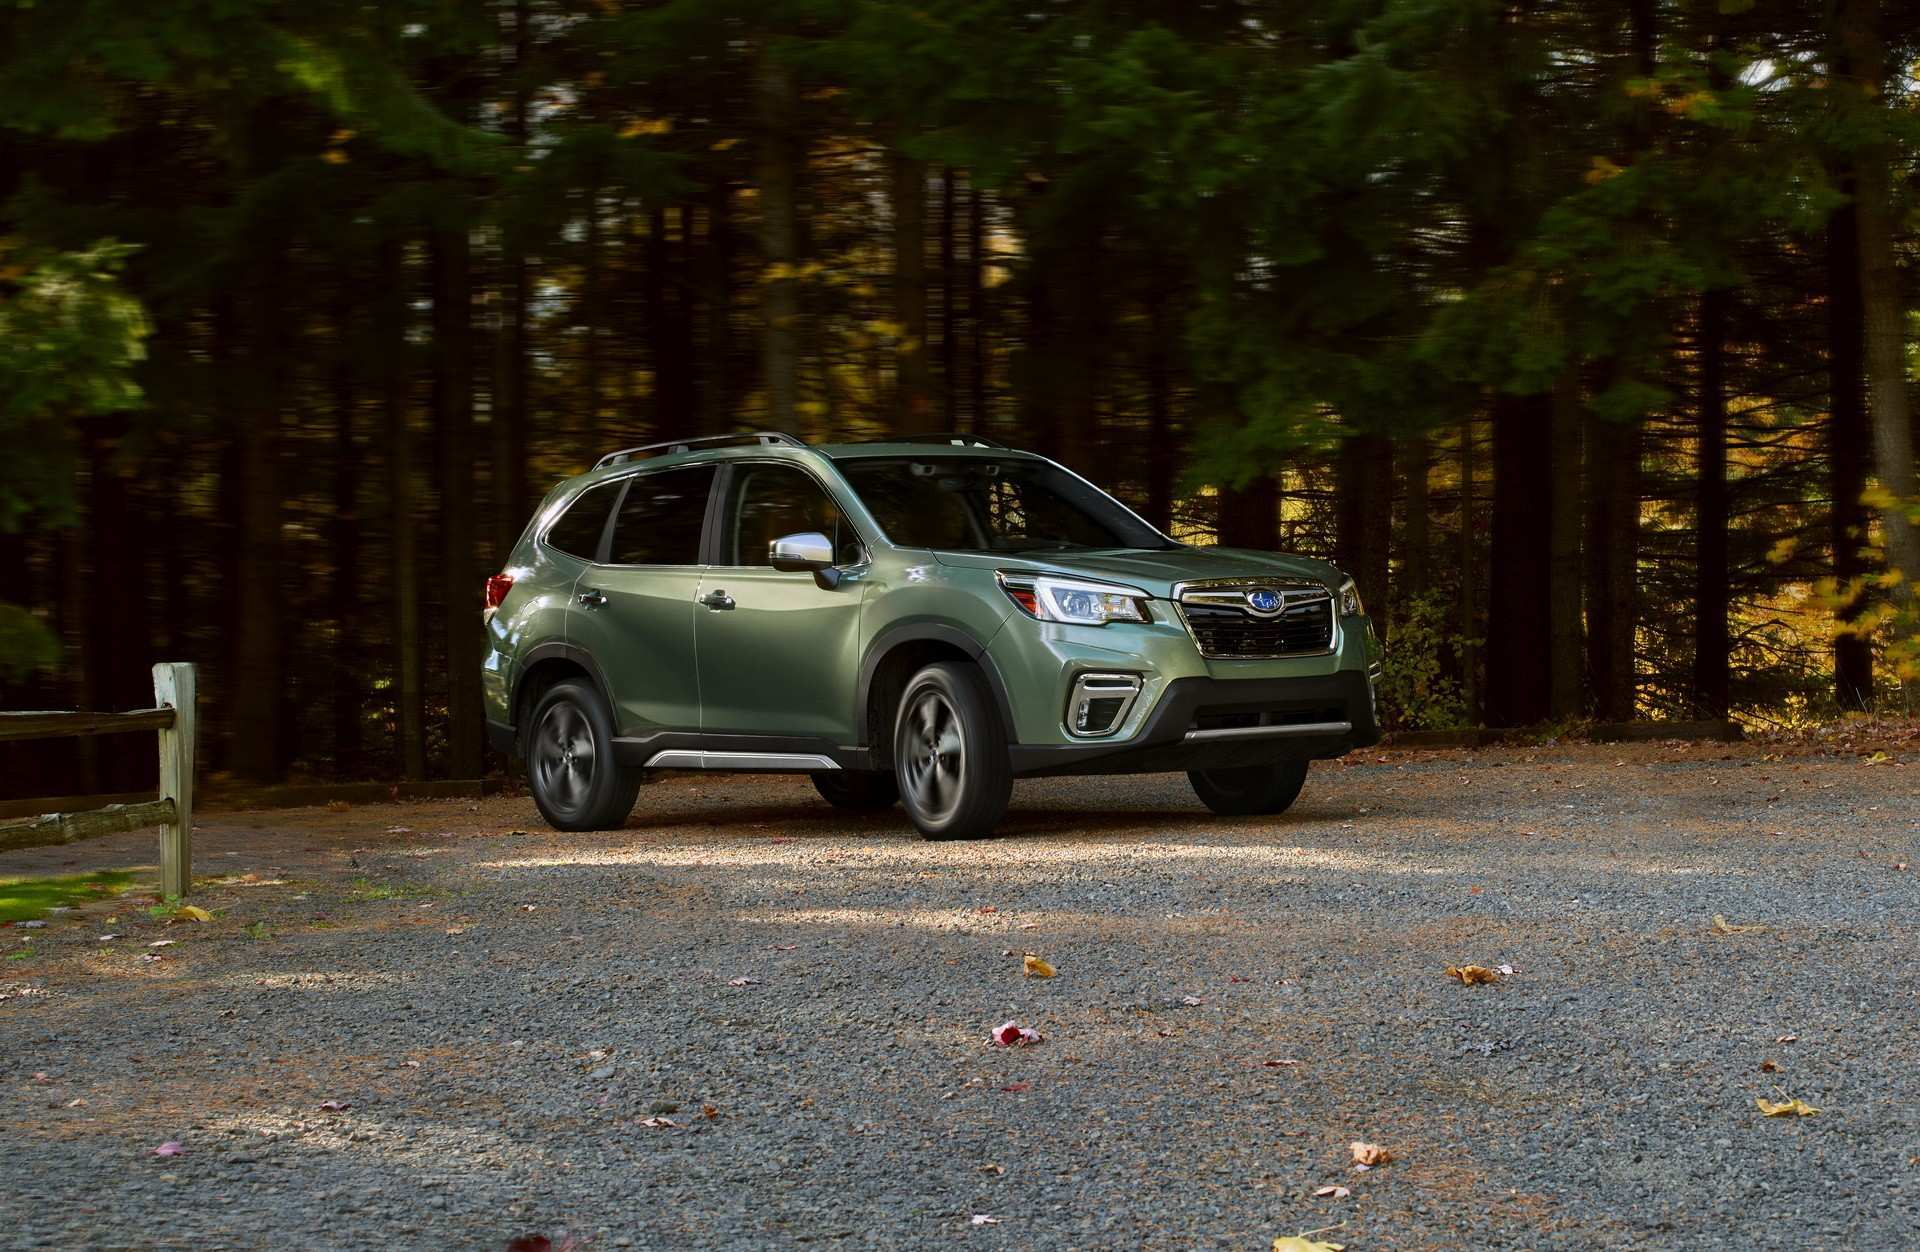 96 Great 2019 Subaru Forester Debut Photos with 2019 Subaru Forester Debut